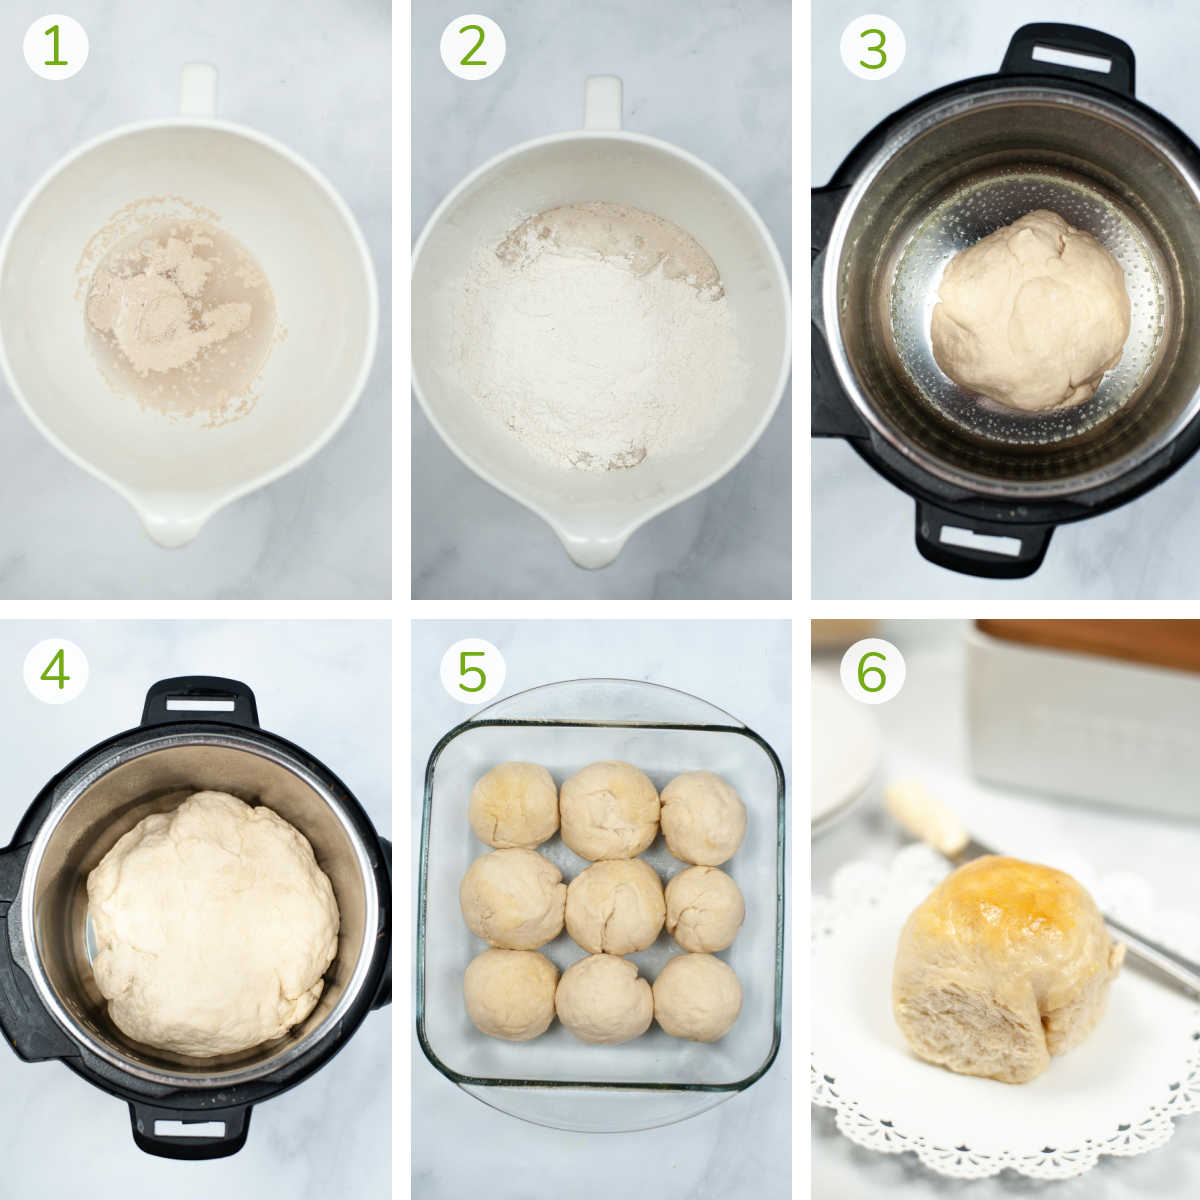 series of photos showing mixing the dough, letting it rise in the instant pot, baking and buttering the dinner rolls.